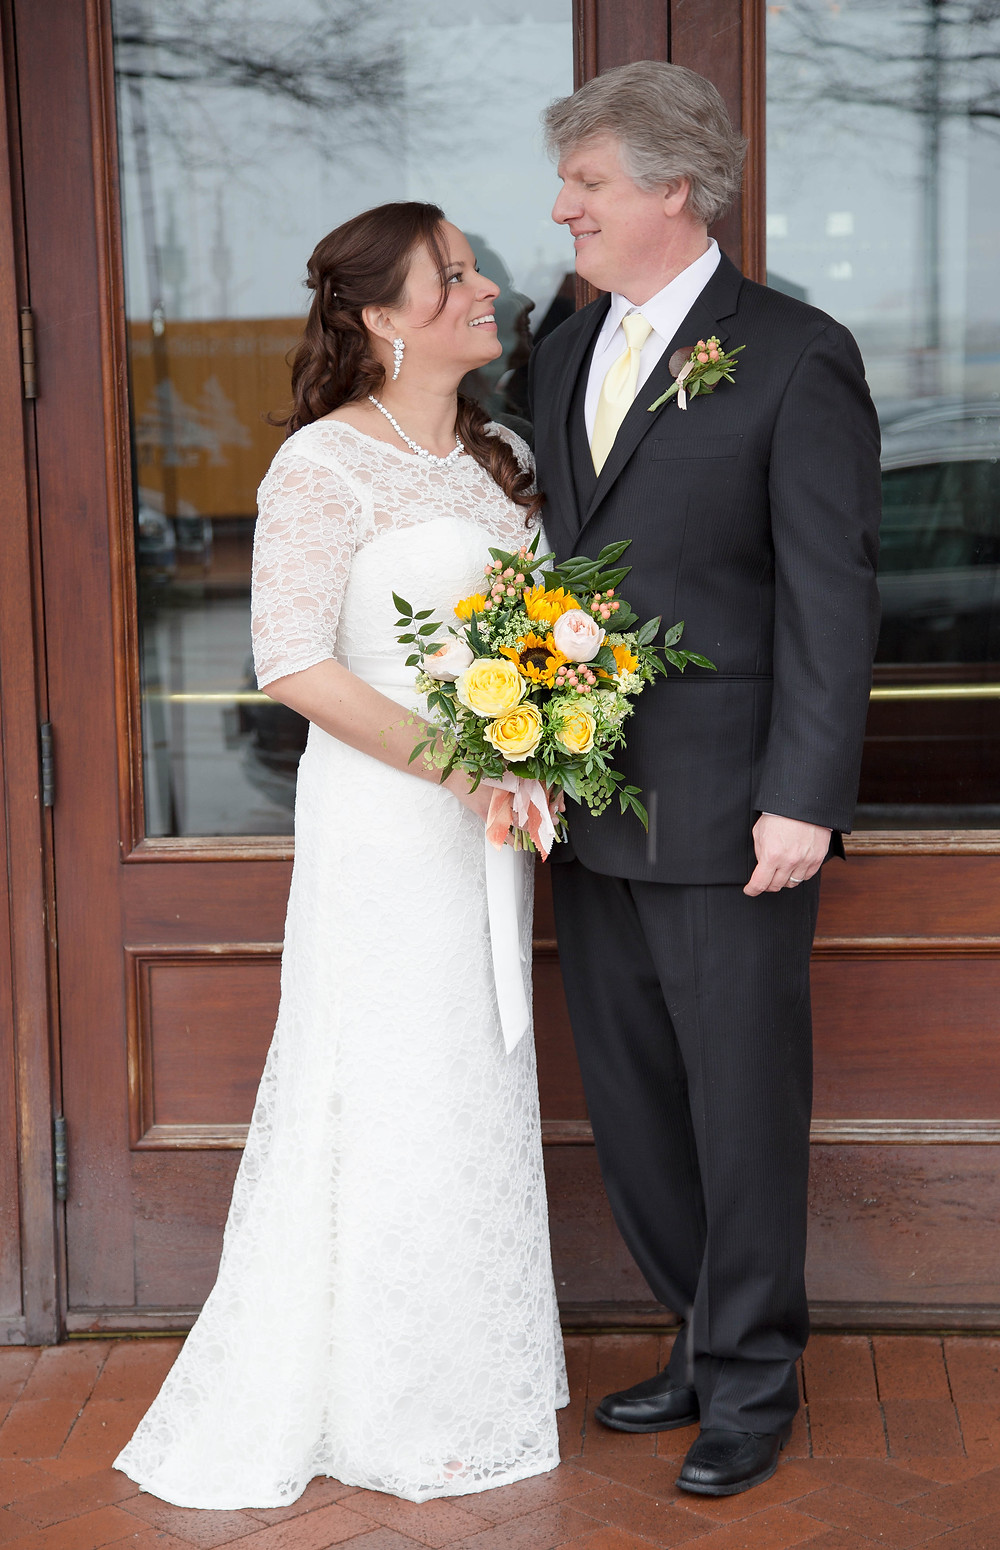 Cinghaile Baltimore Wedding